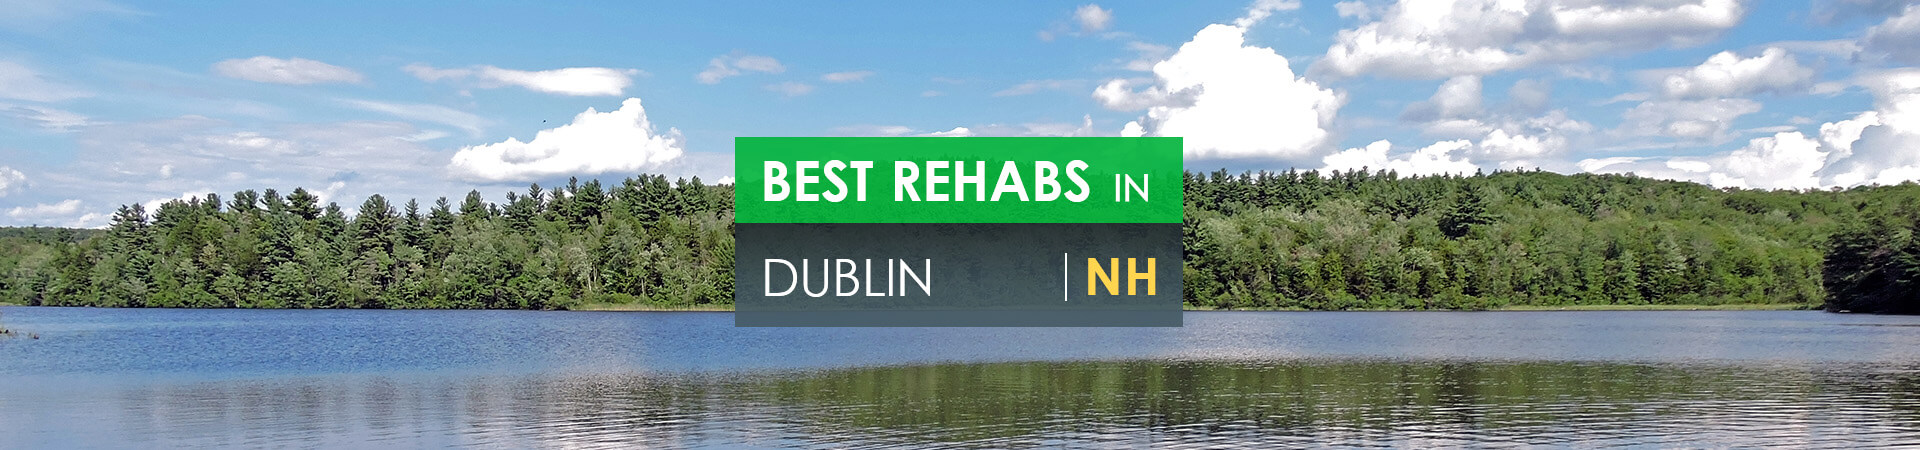 Best rehabs in Dublin, NH